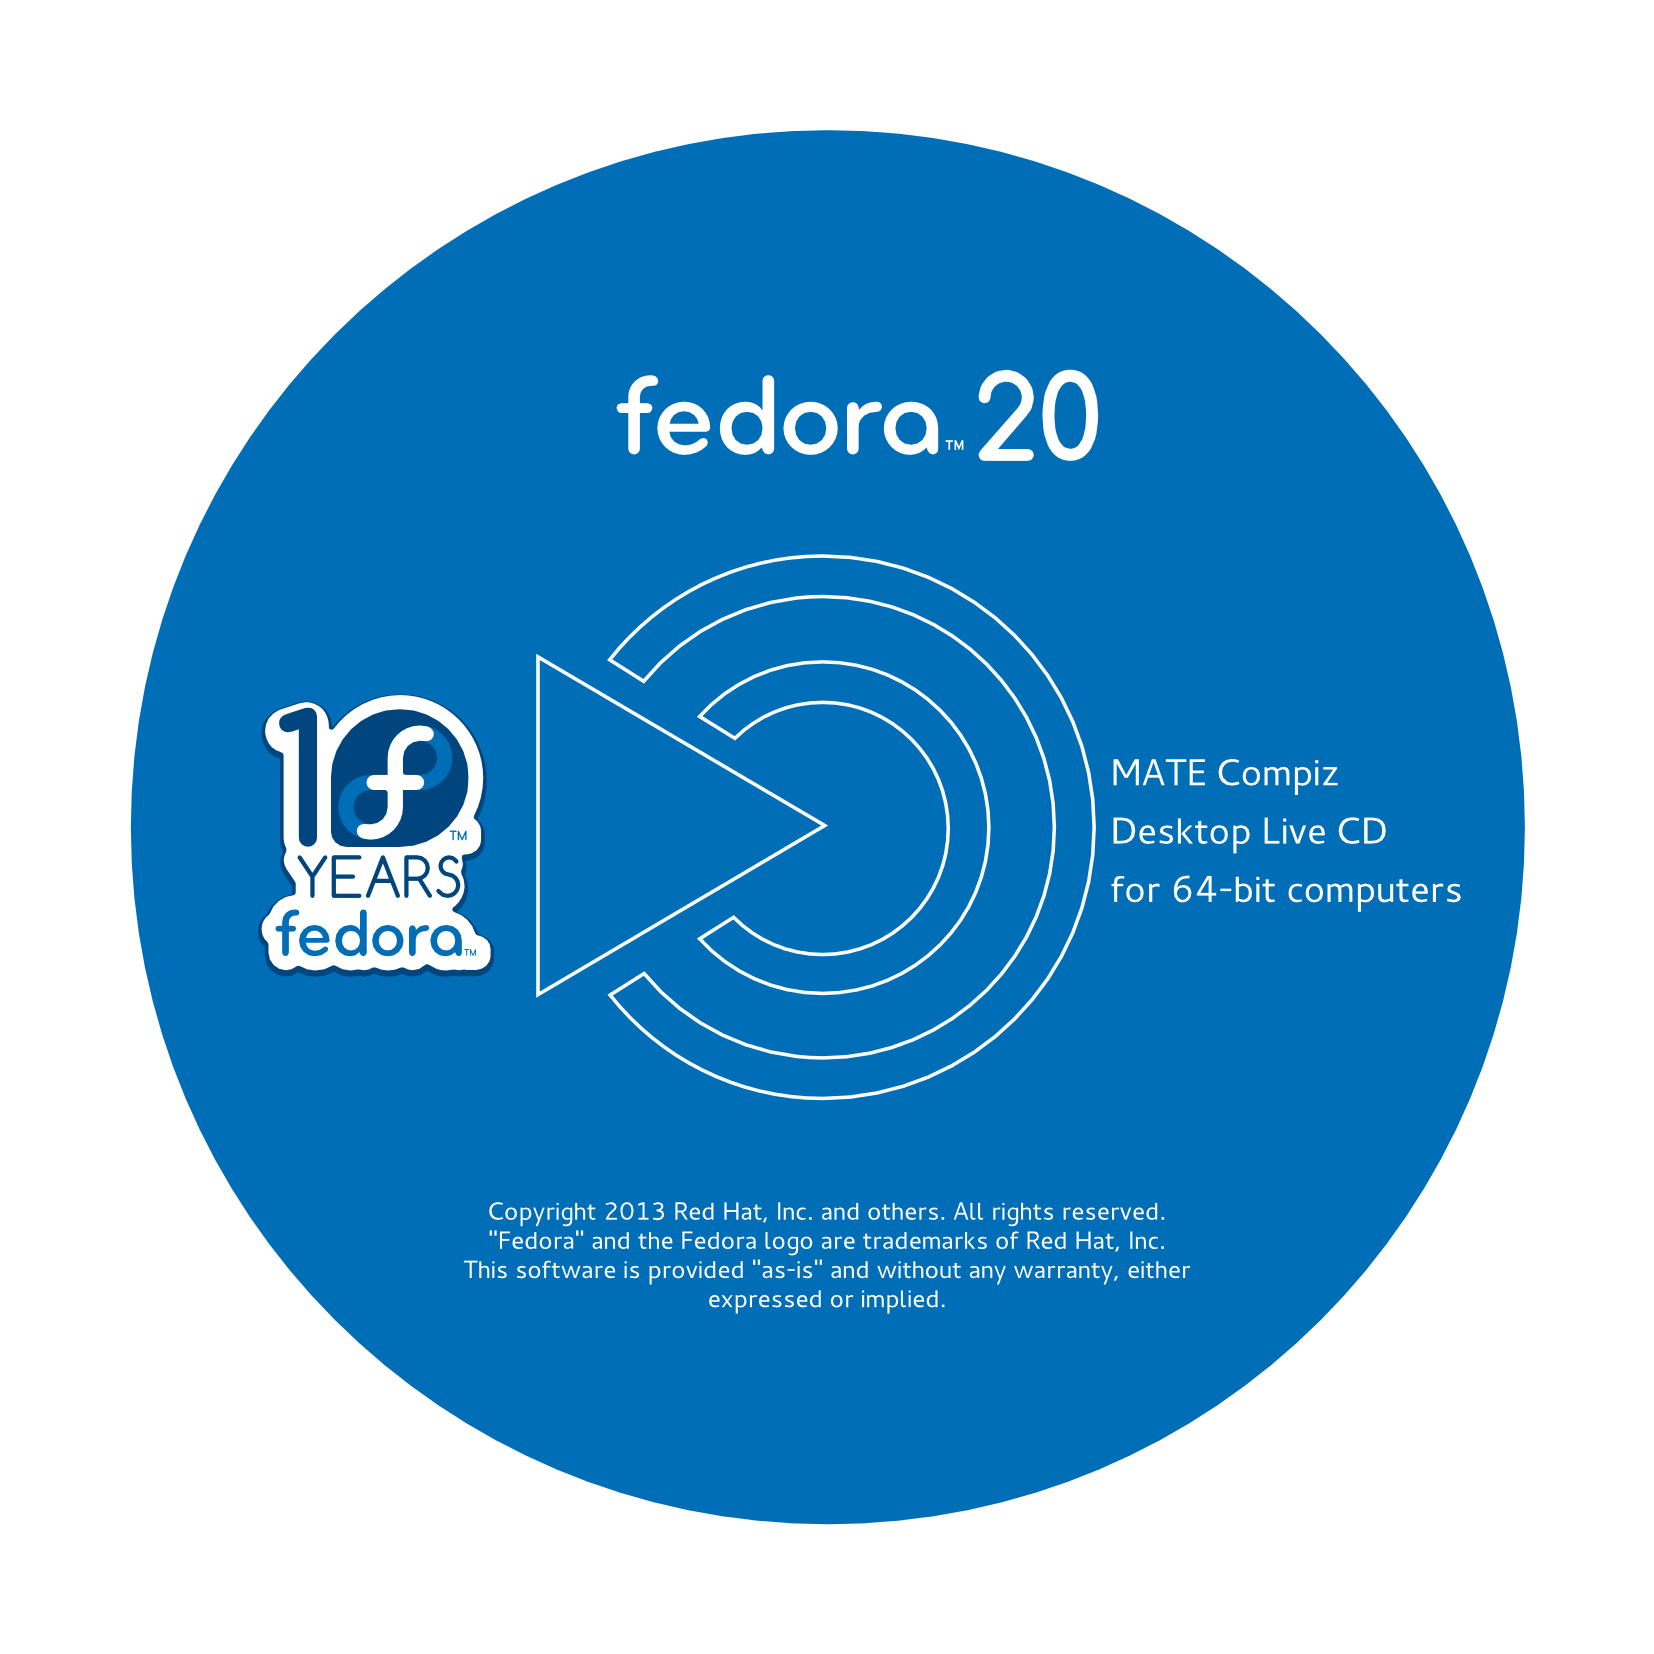 Fedora-20-livemedia-label-mate compiz-64.png